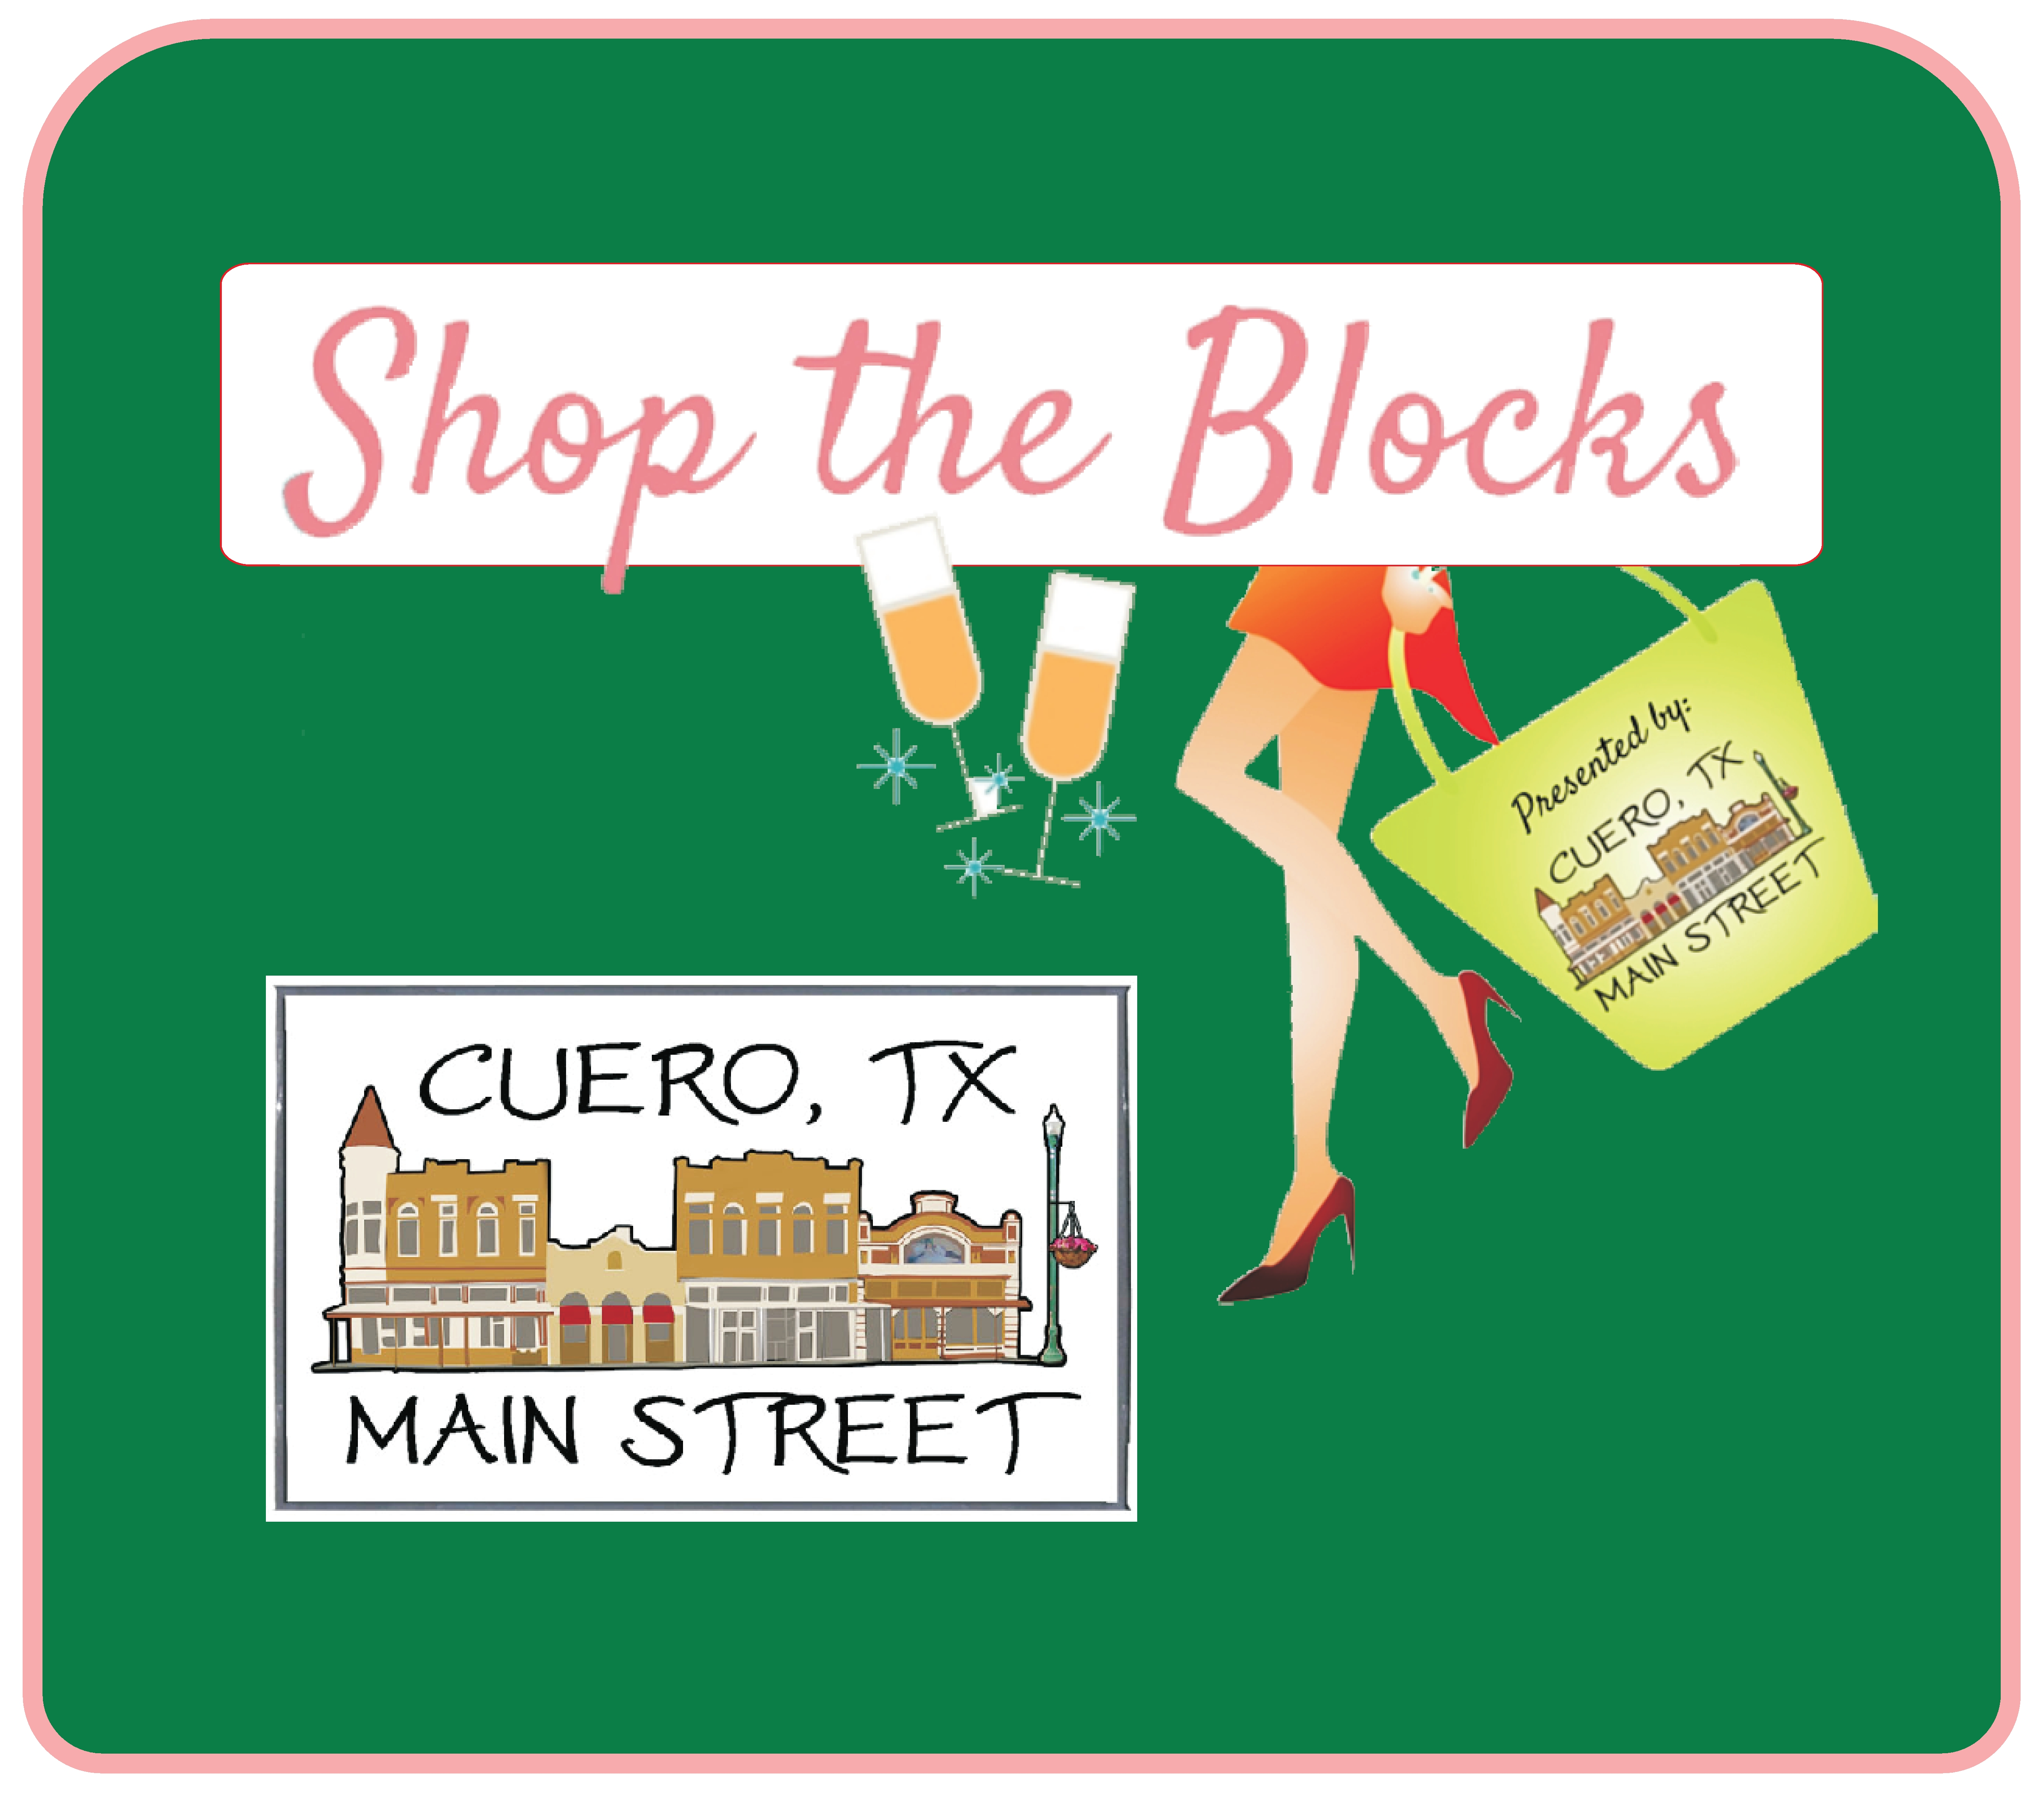 2016 20shop 20the 20blocks 20  20cuero